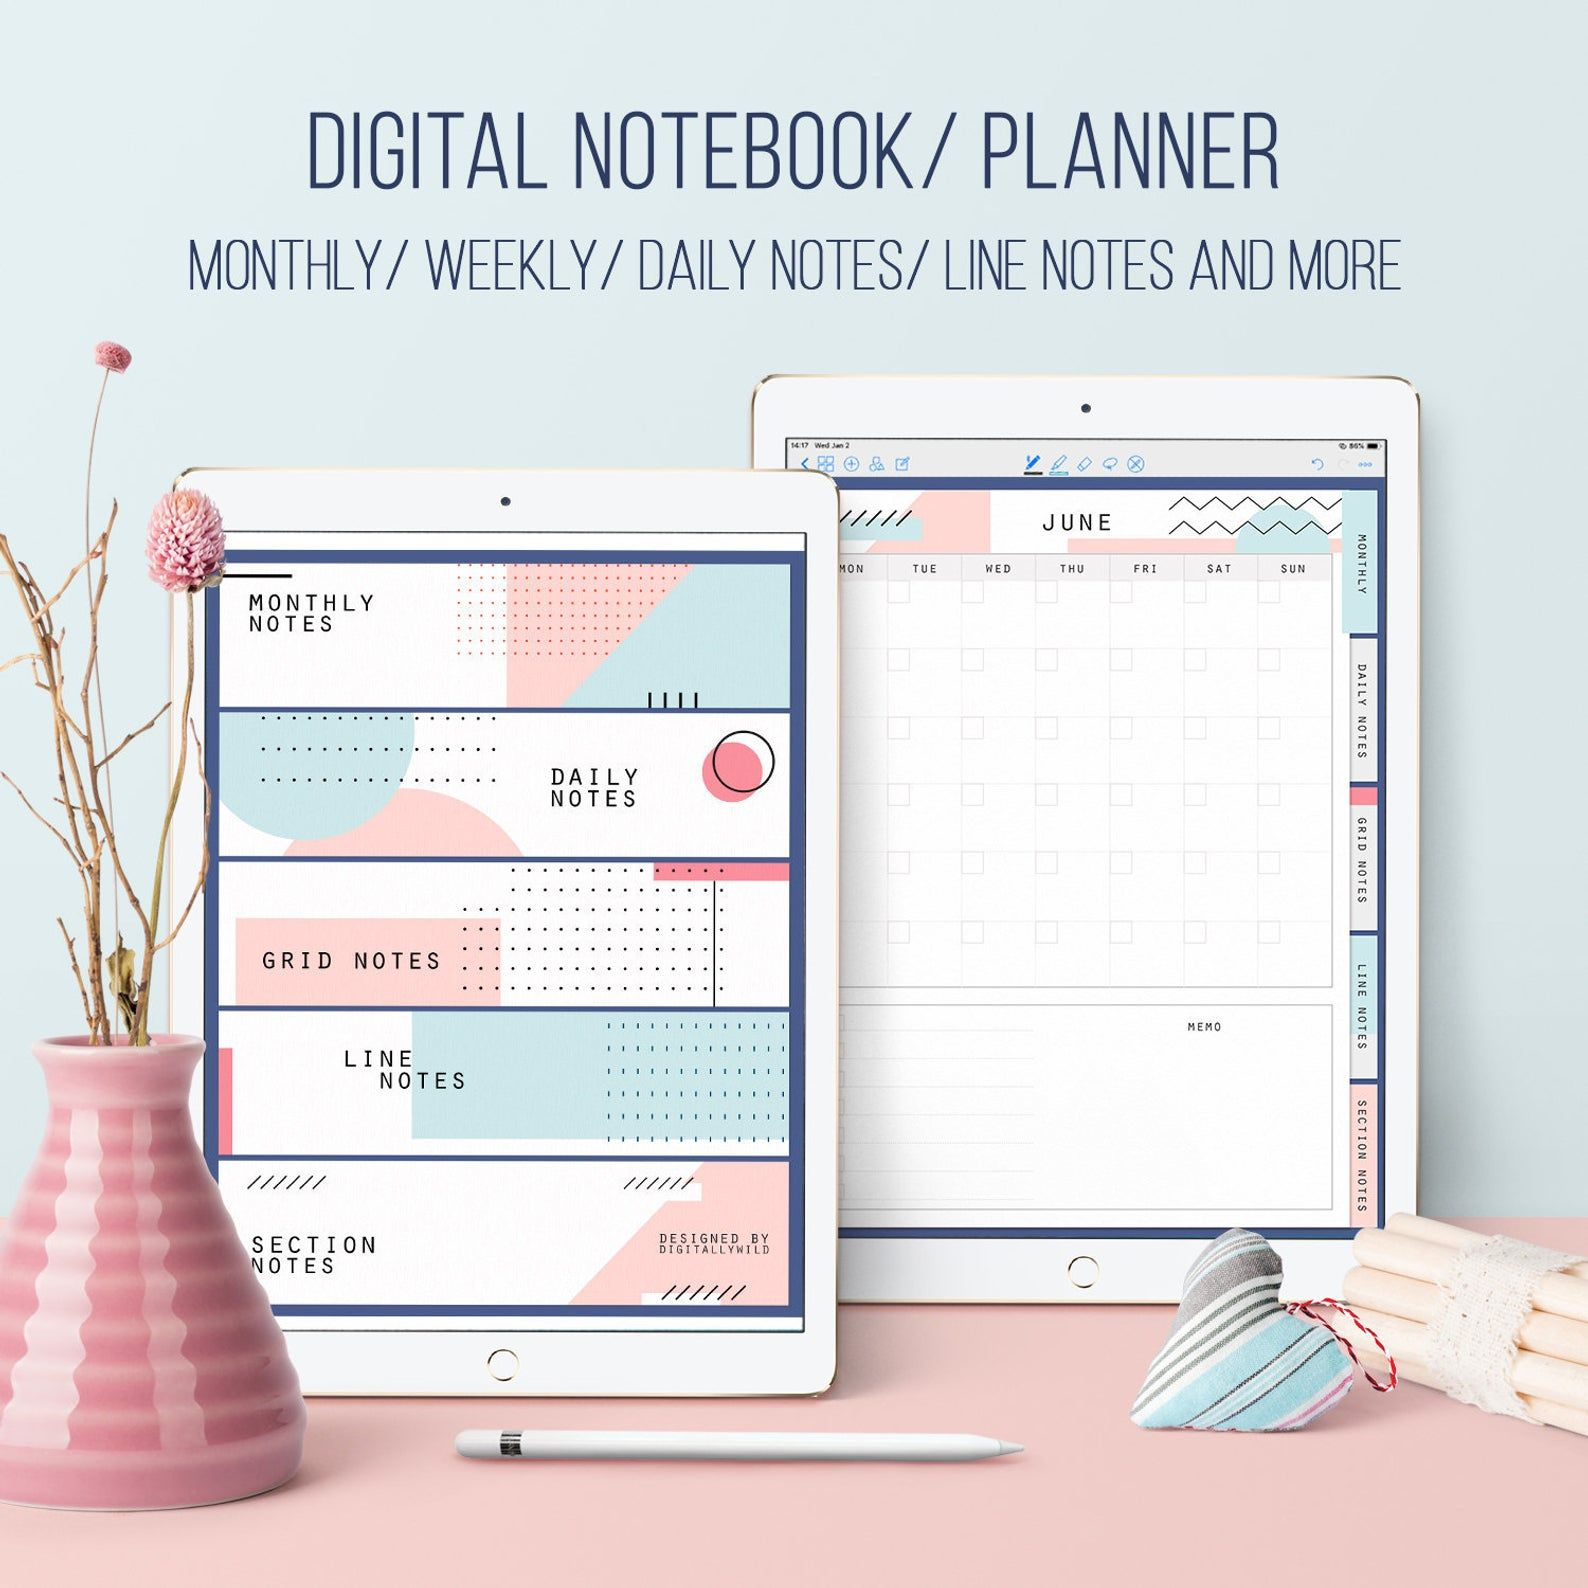 Digital planner Notebook Grid Lined notebook Undated Monthly Weekly & Daily planner Student Teacher planner Minimalist planner Goodnotes